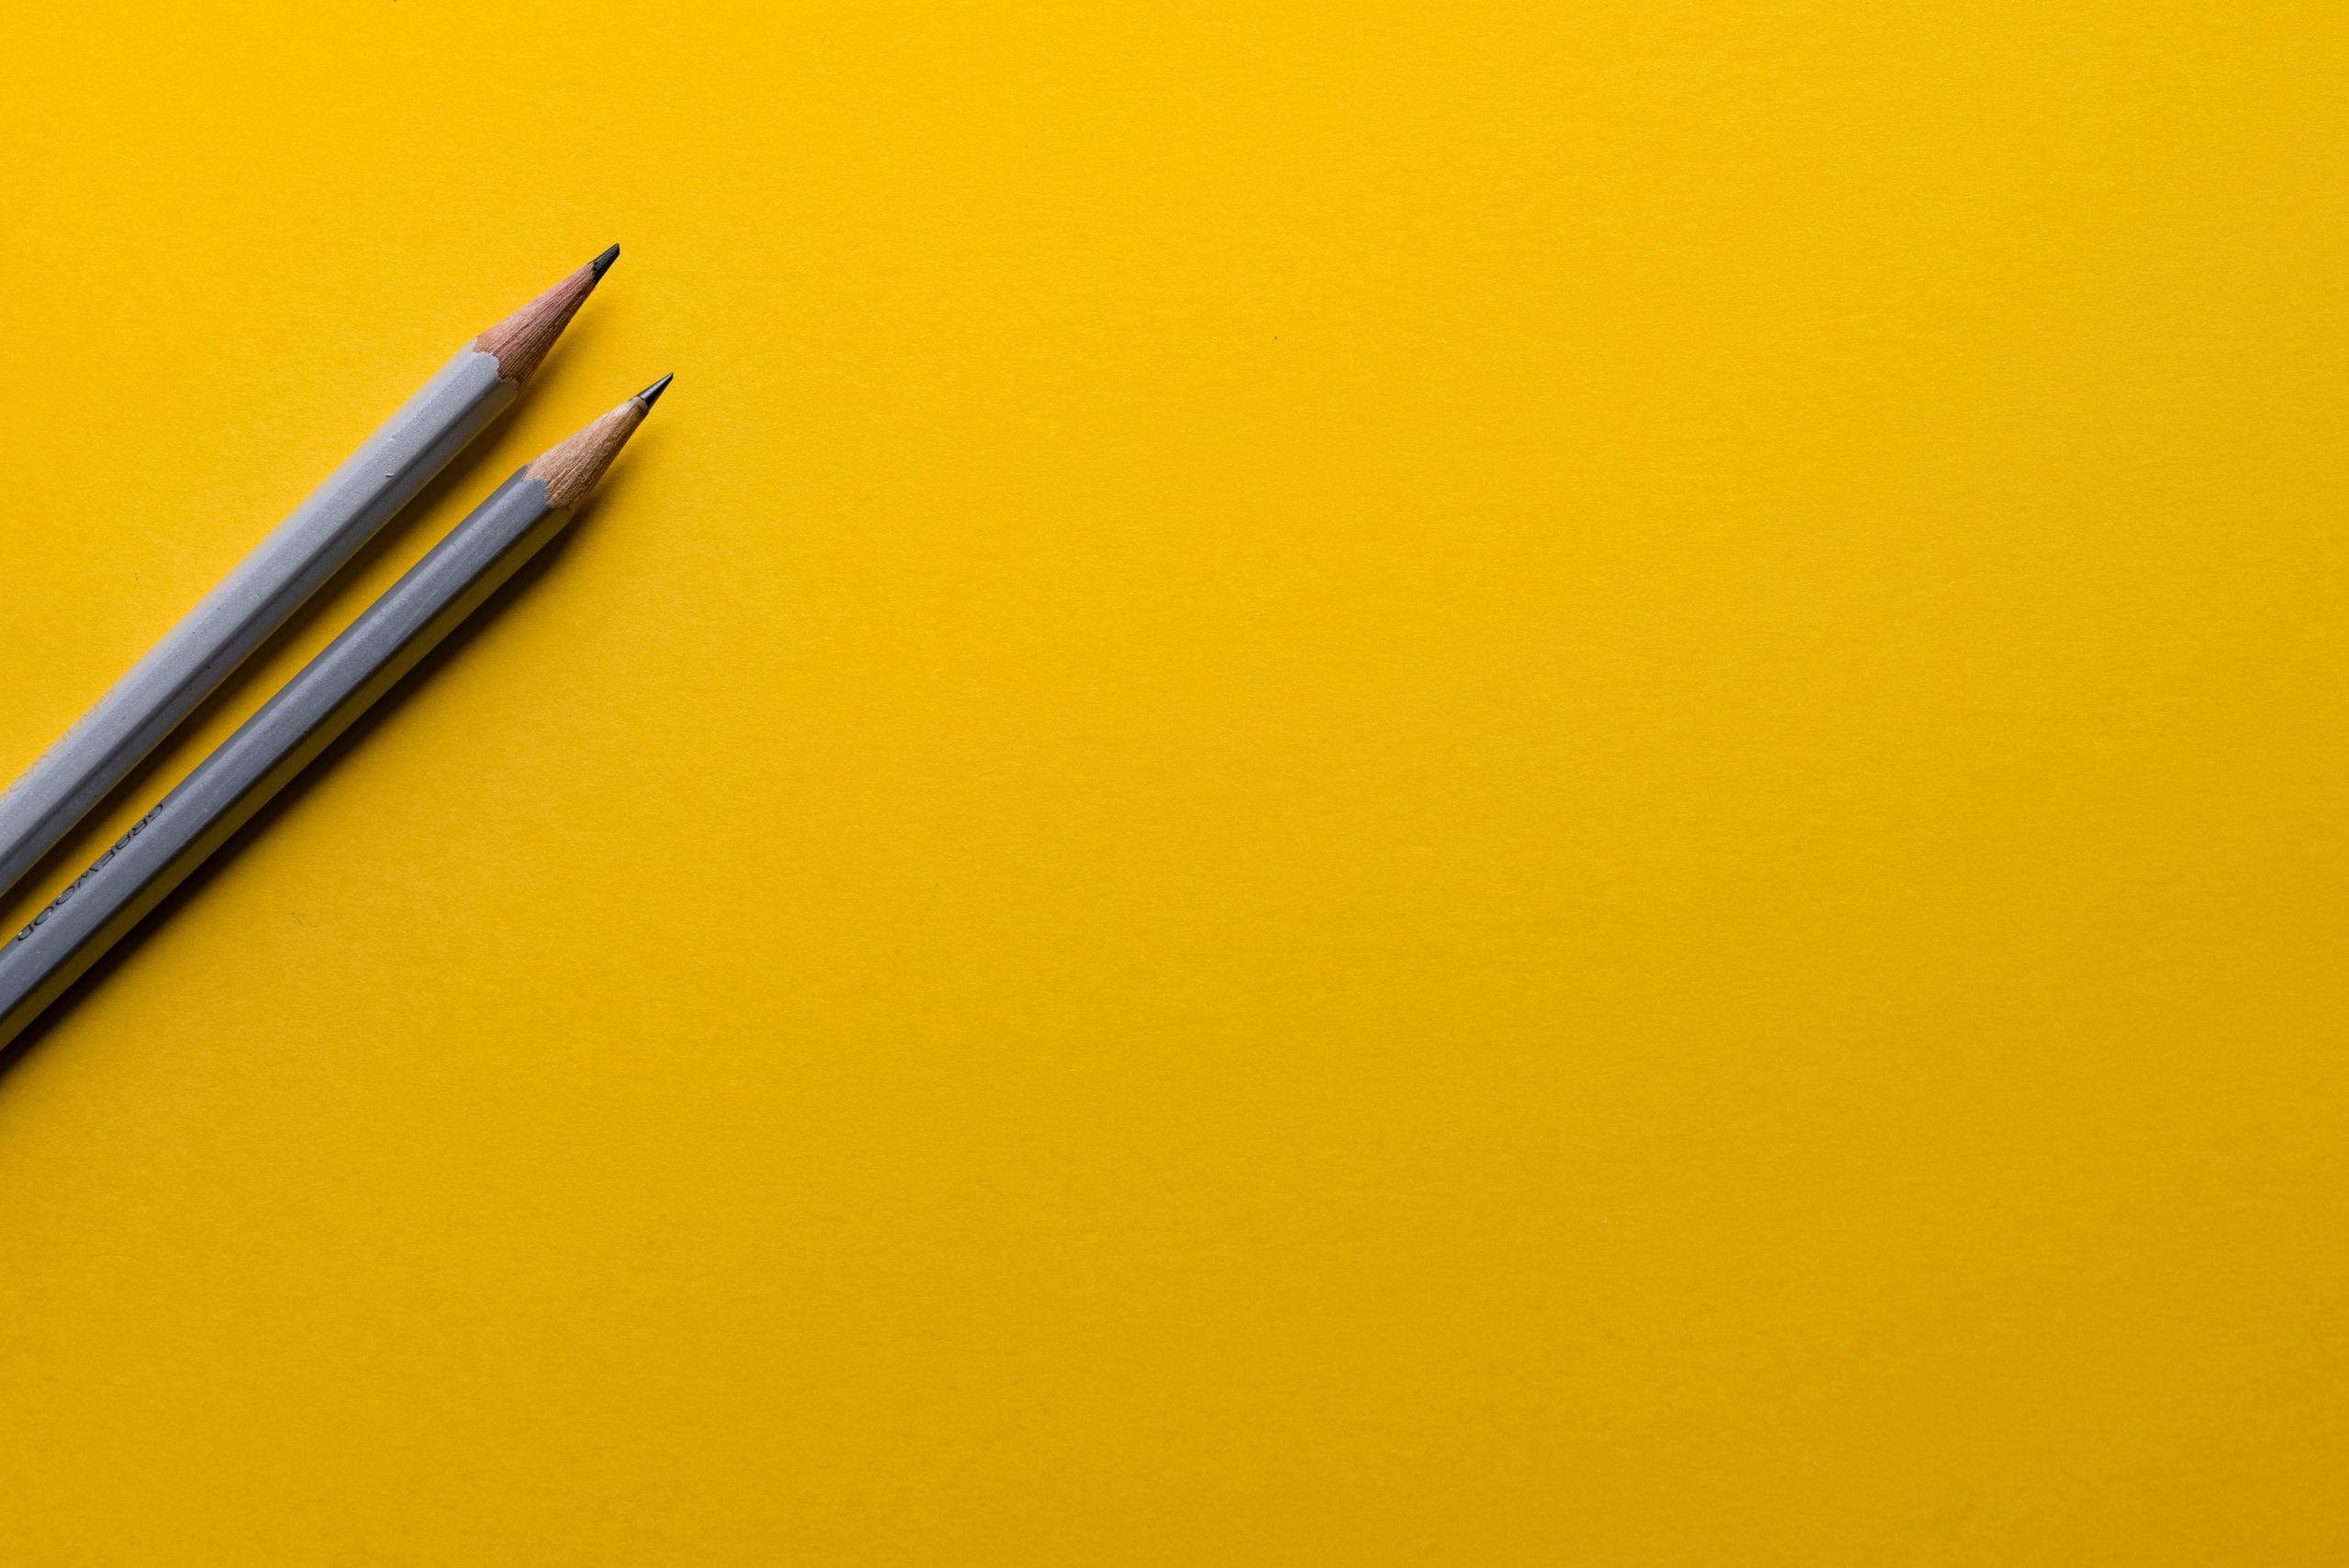 Yellow background with two gray pencil